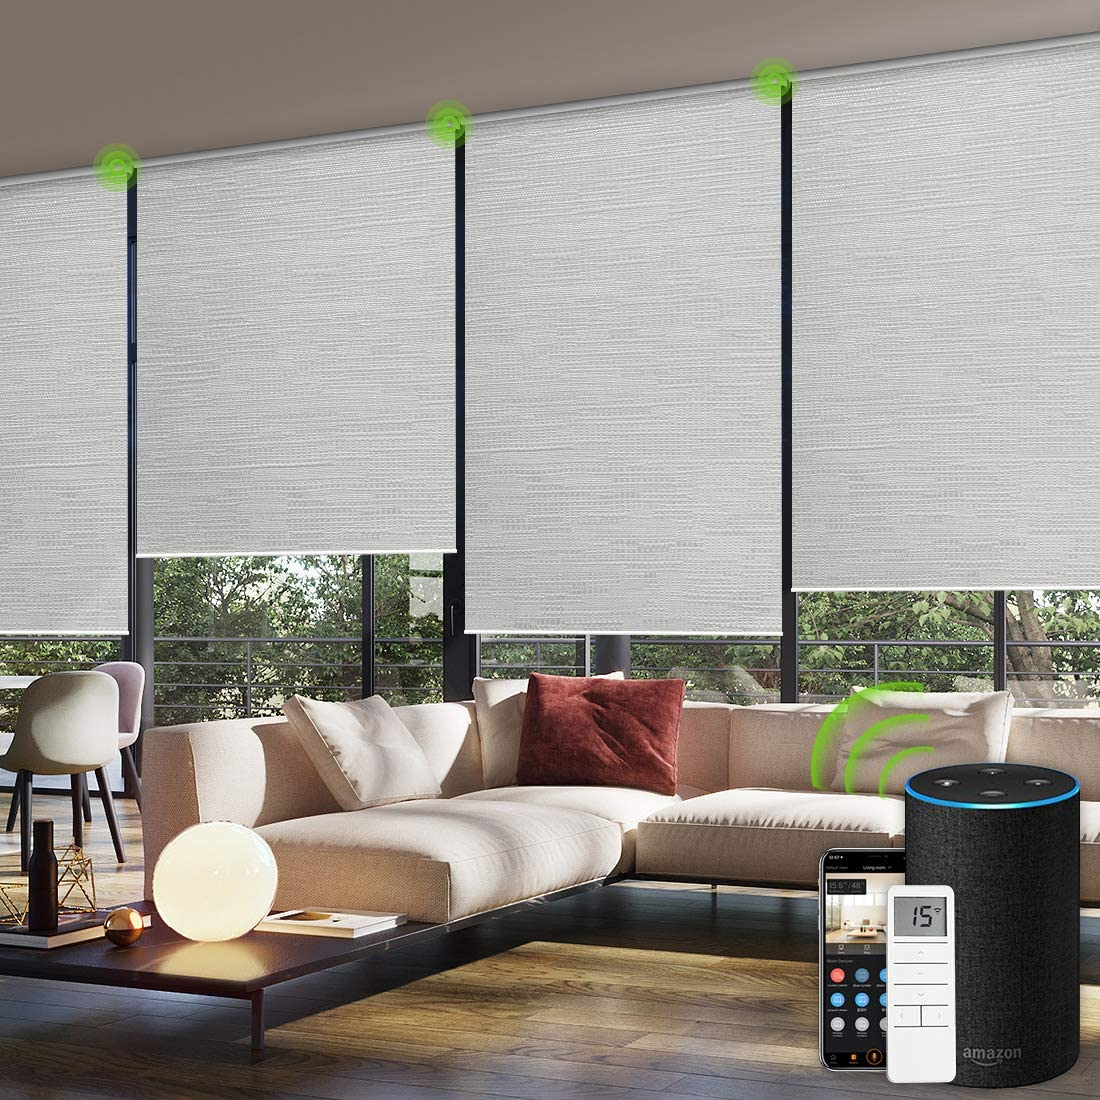 Yoolax Motorized Blinds Remote Control Auto Blinds Blackout Motorized Roller Shade with Valance Customized Jacquard White